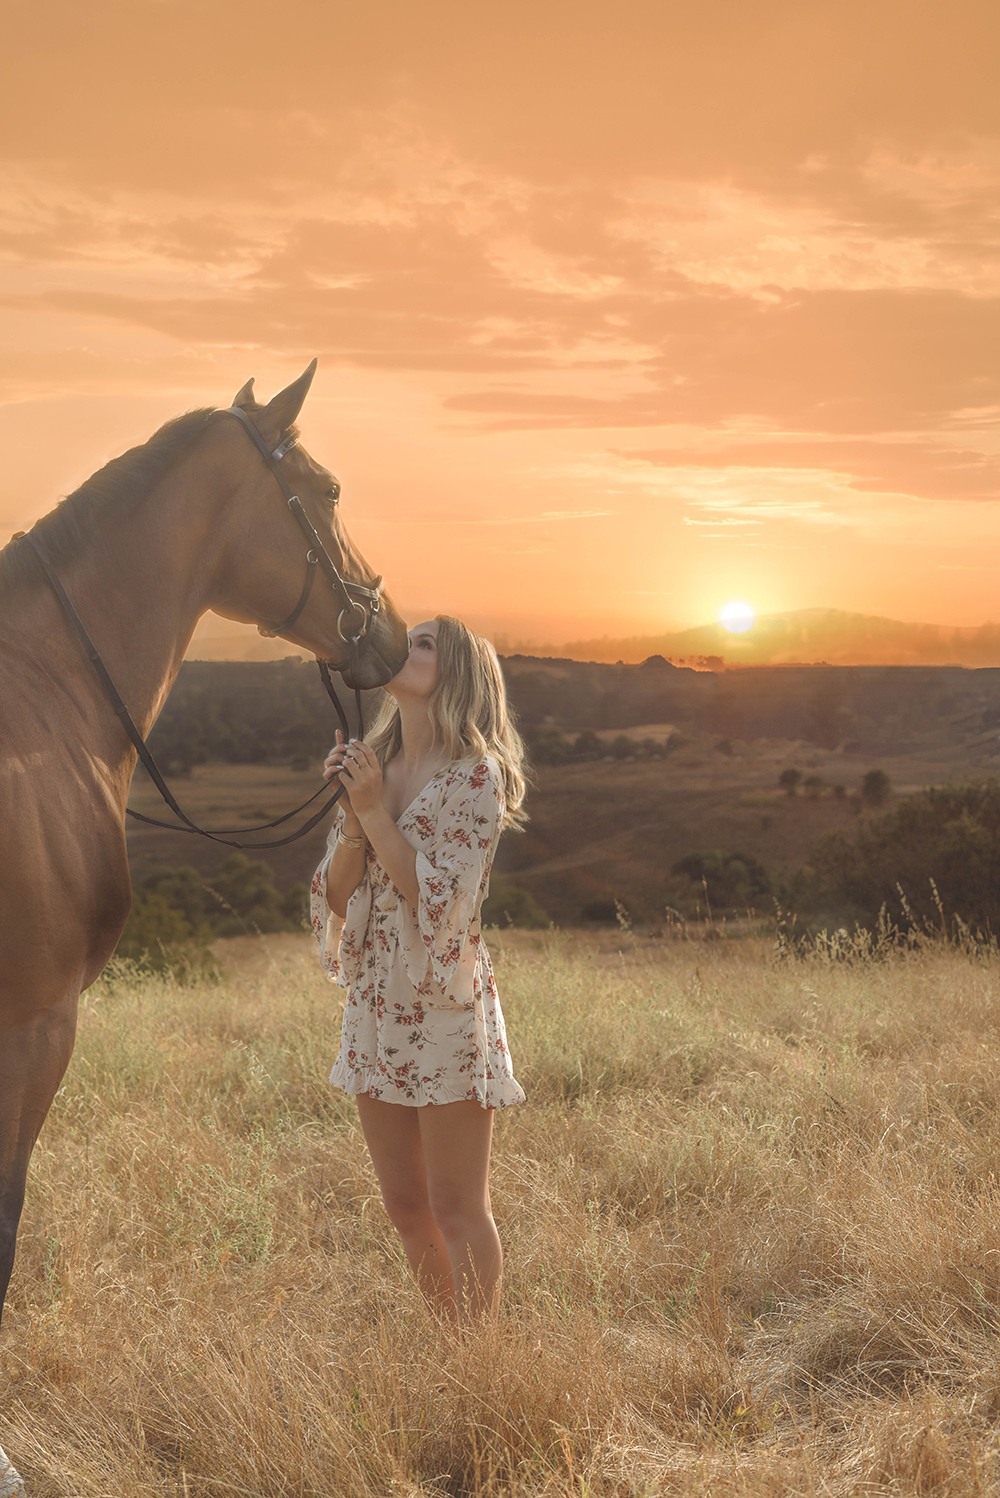 Sunset with a girl and horse